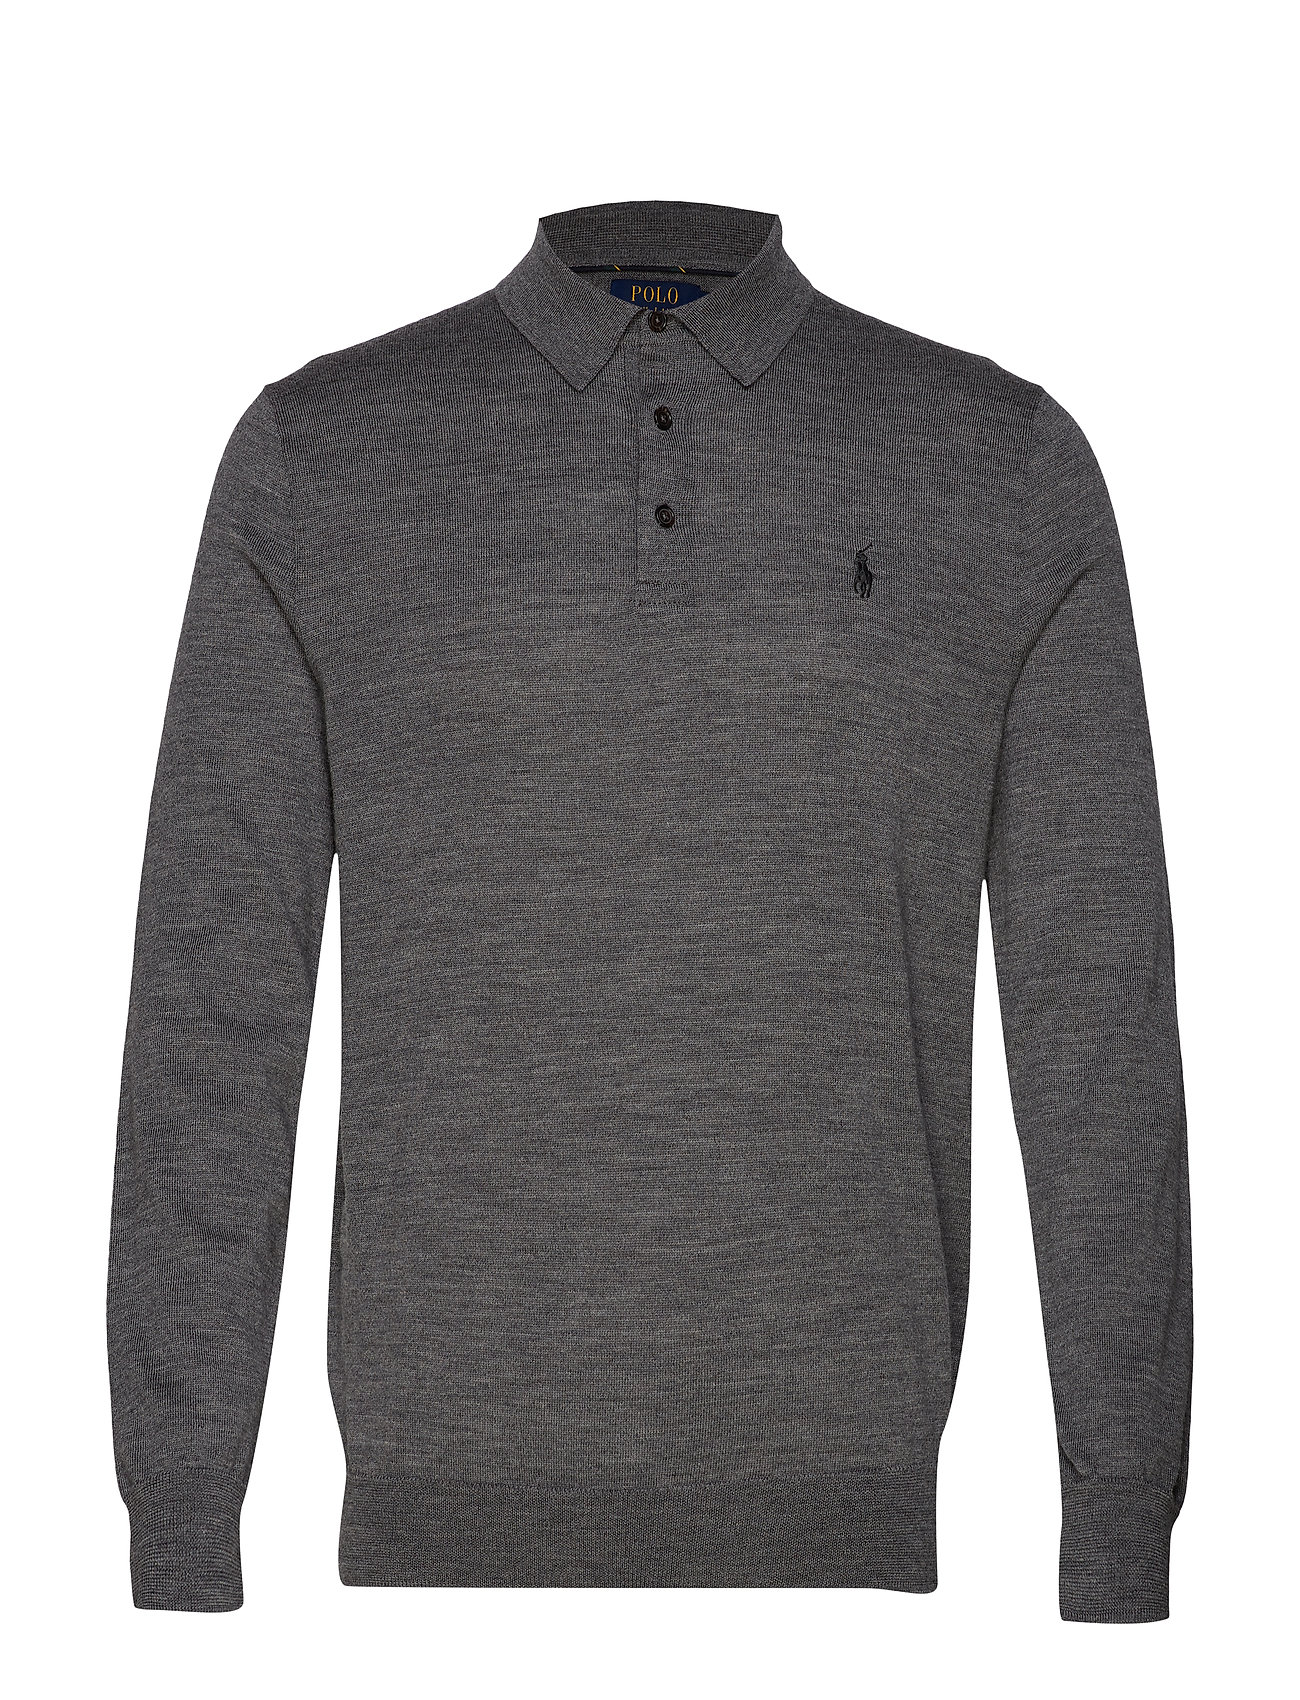 Polo Ralph Lauren LS PLACKET-LONG SLEEVE-SWEATER - FAWN GREY HEATHER